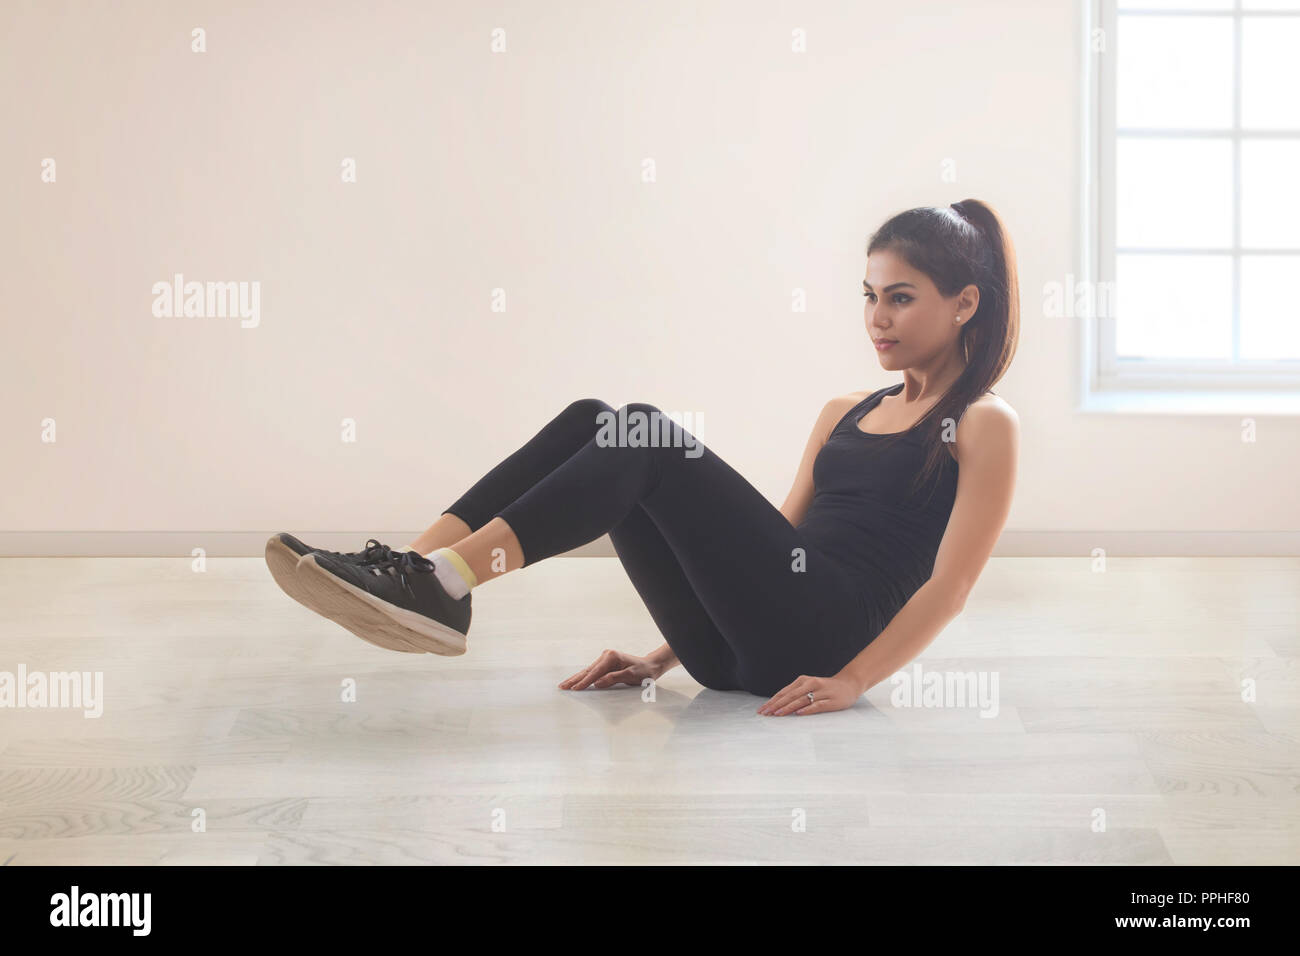 Young woman in workout clothes doing exercises on the floor. - Stock Image